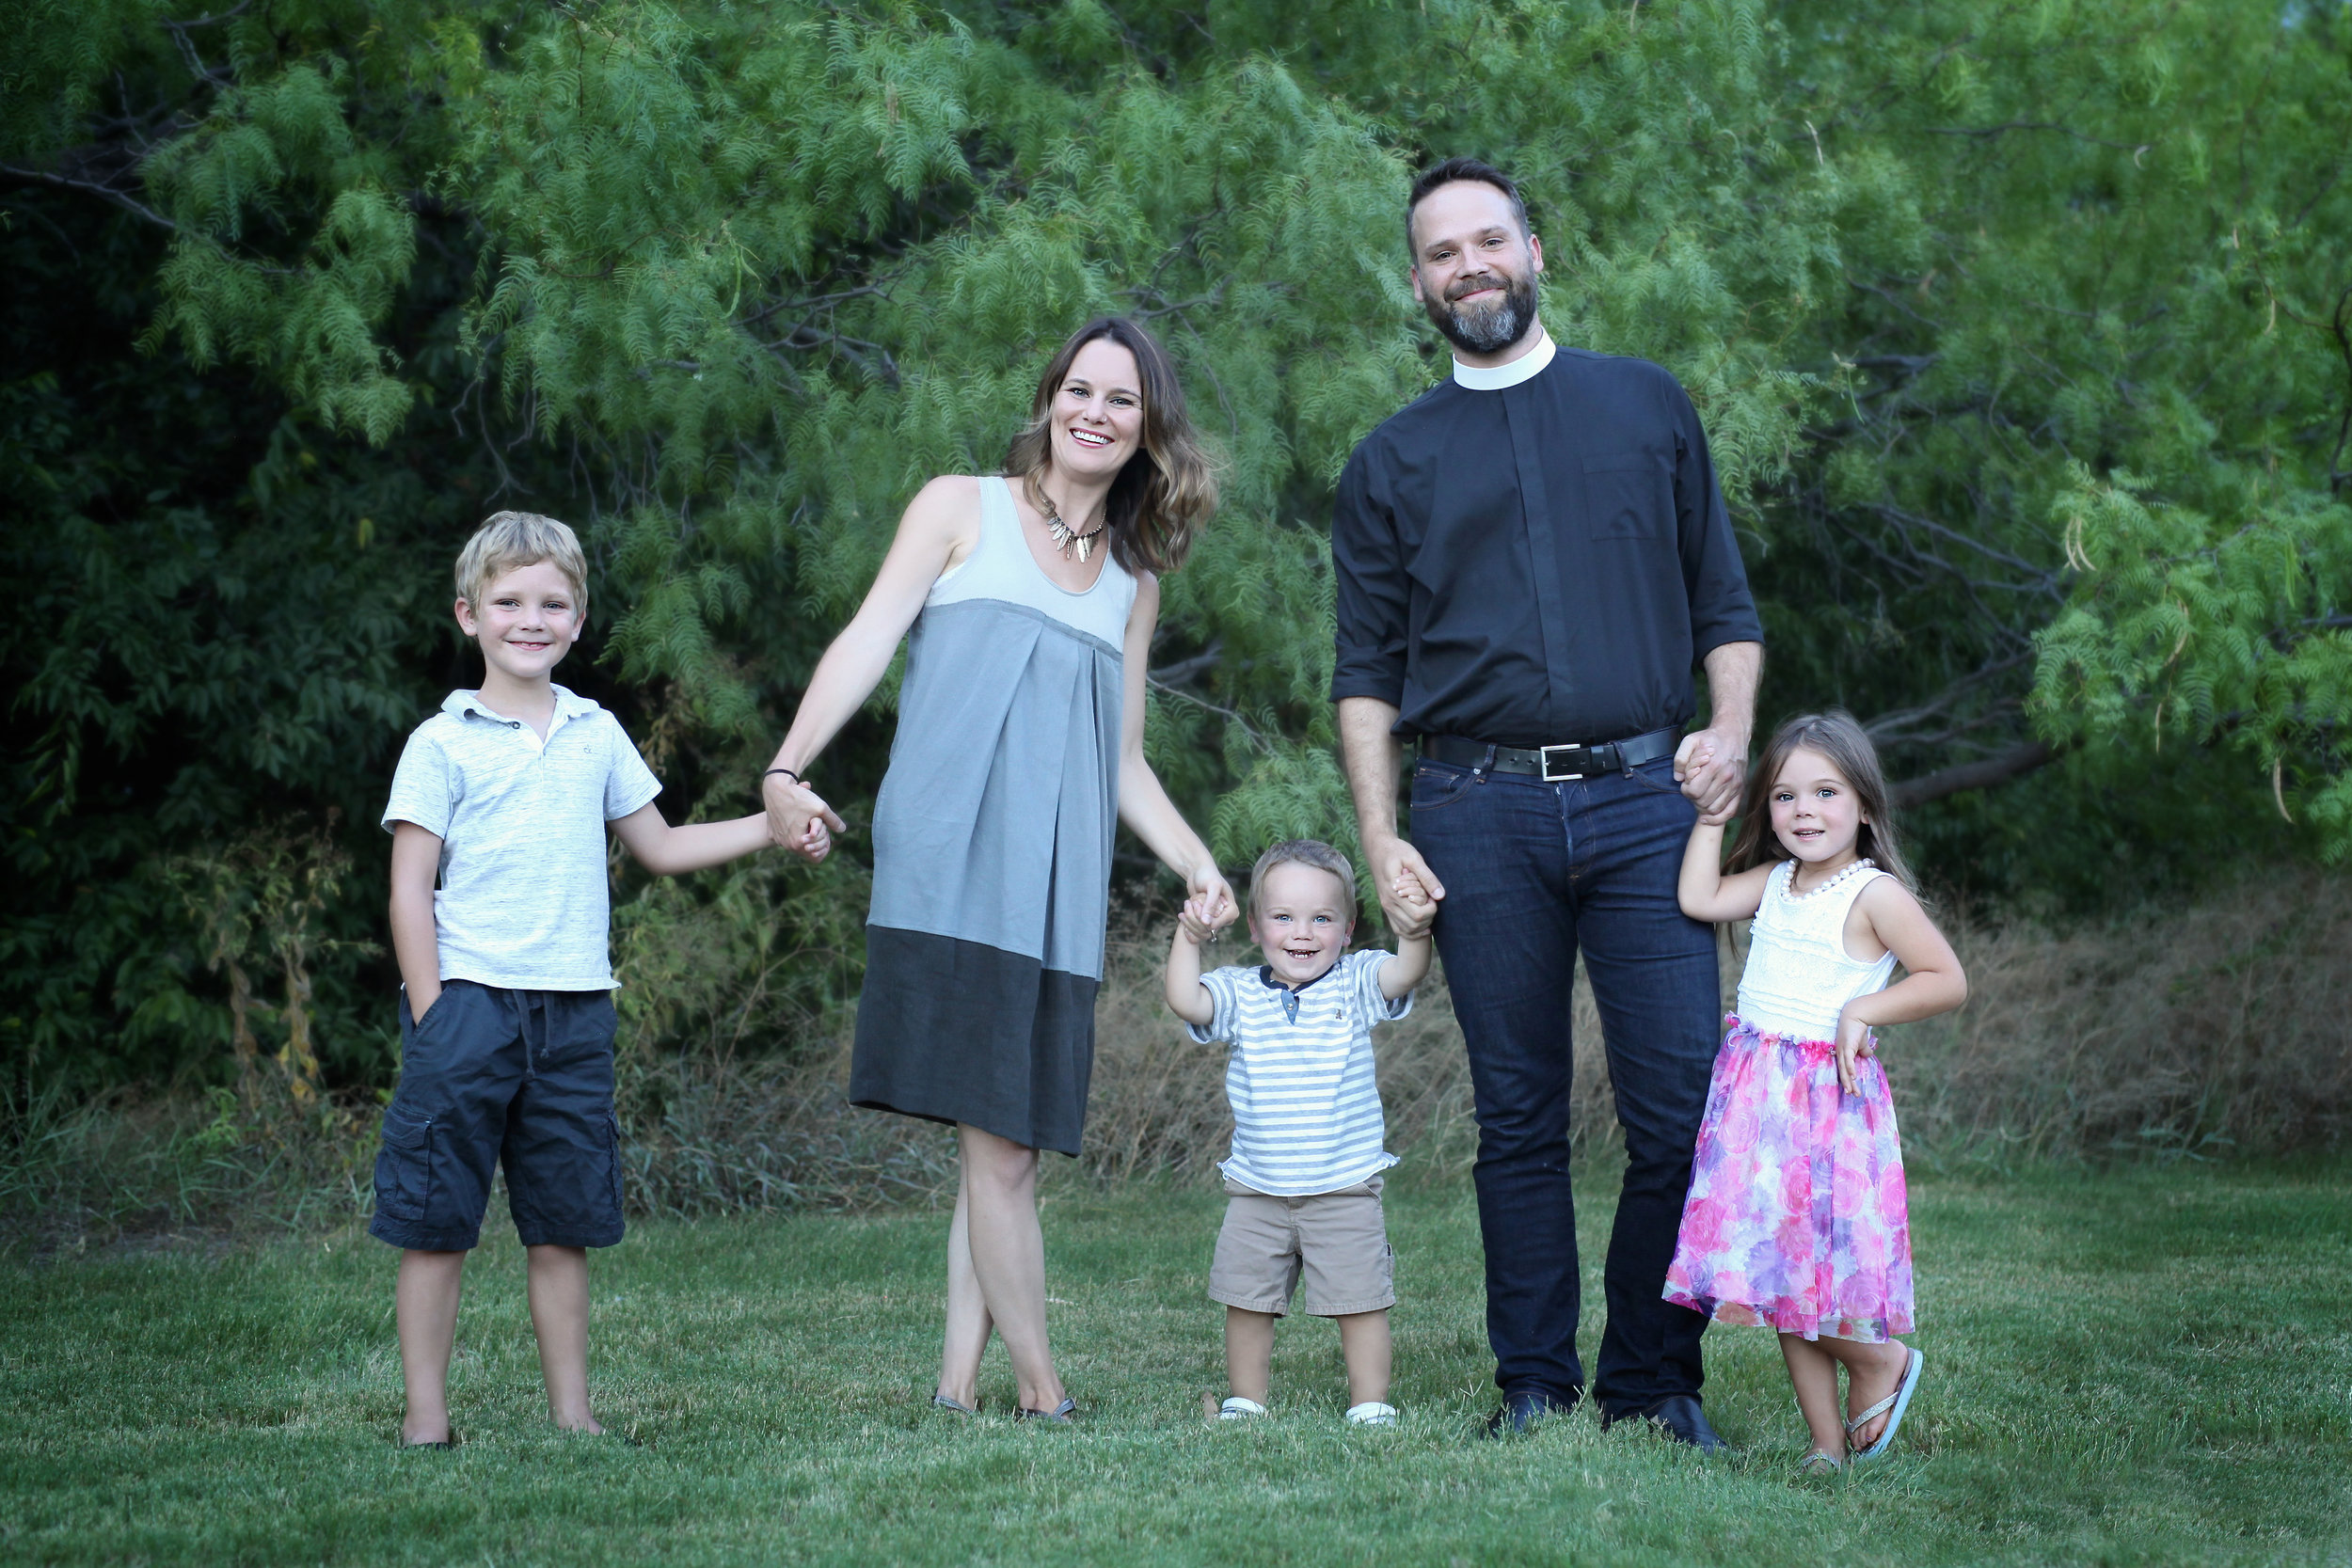 The Willits Family  |   Jack, Andrea, Soren, Erik, and Reese